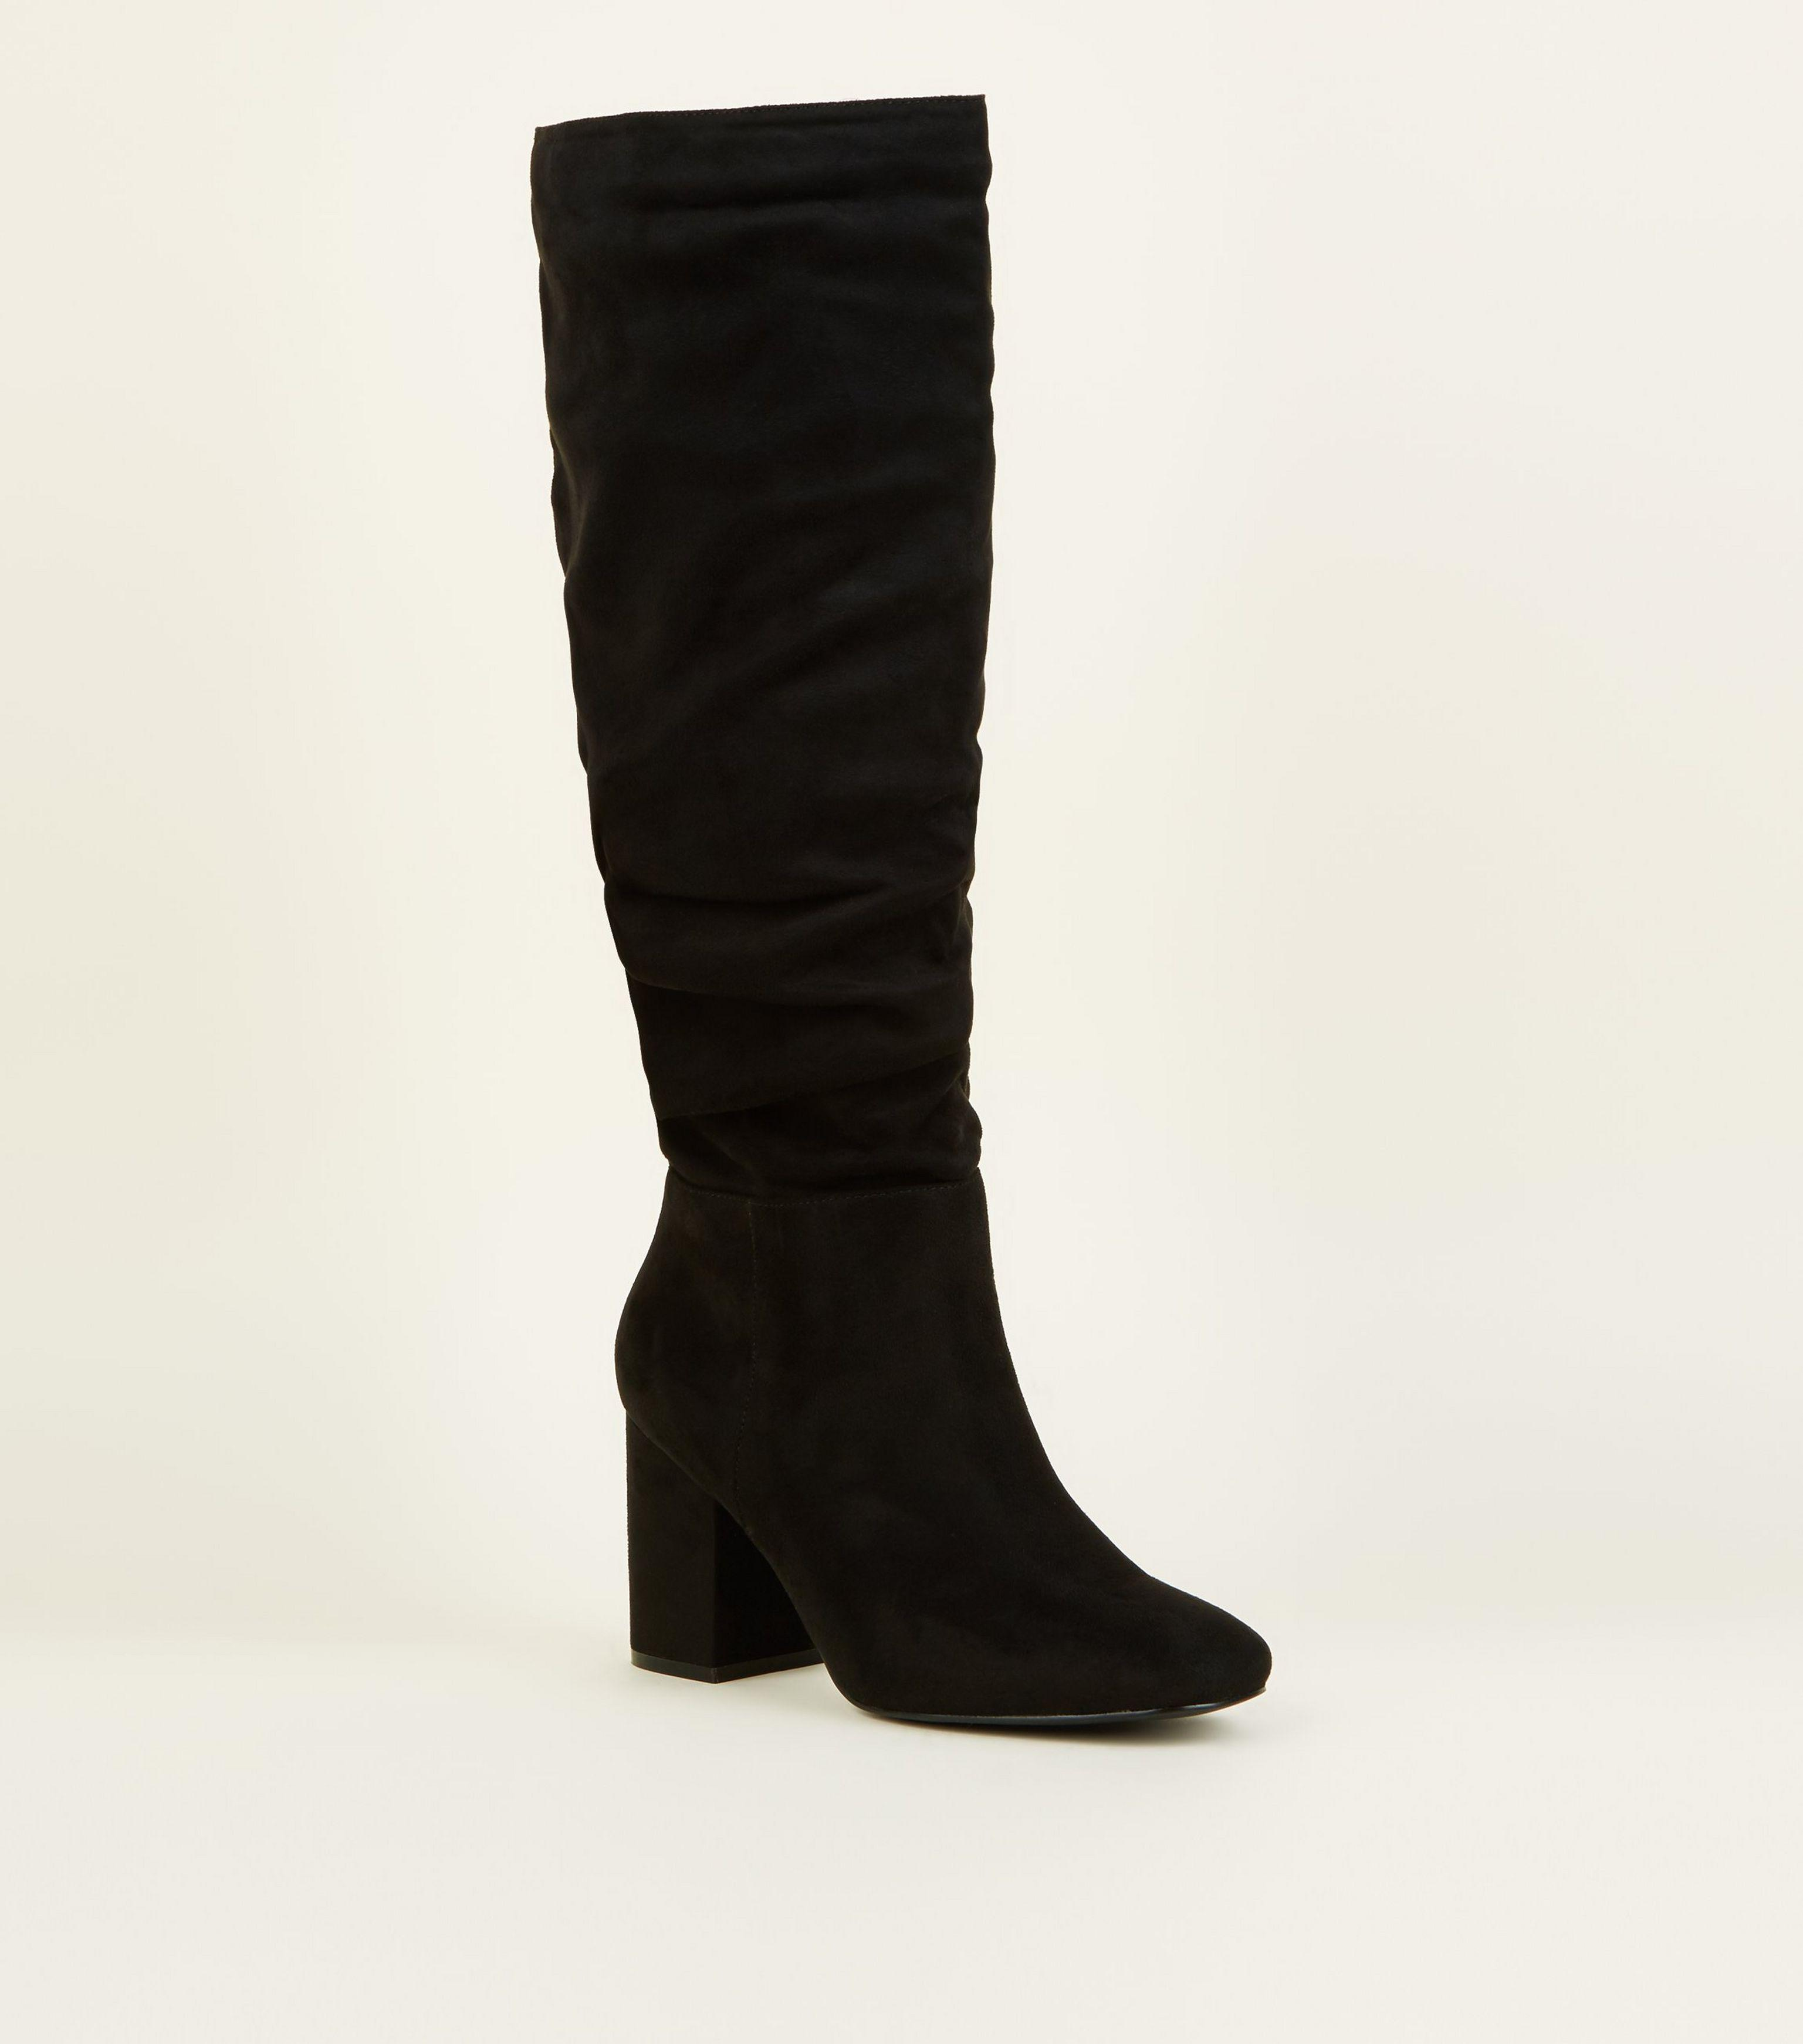 f218c9c5a539 New Look Wide Fit Black Suedette Ruched Block Heel Boots in Black - Lyst